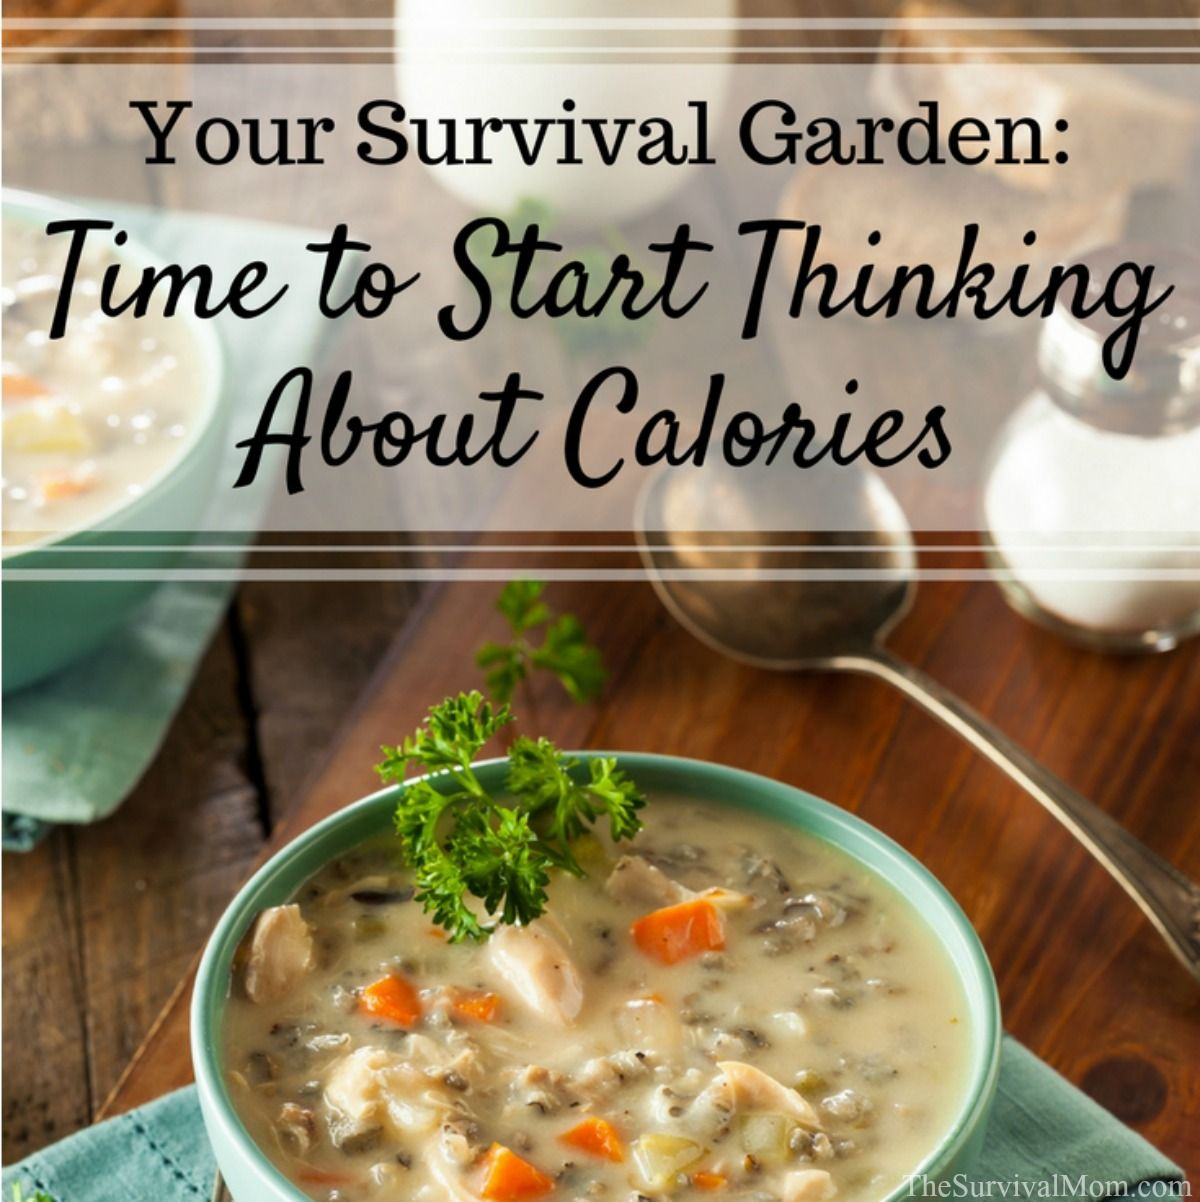 Your Survival Garden Time to Start Thinking About Calories via The Survival Mom